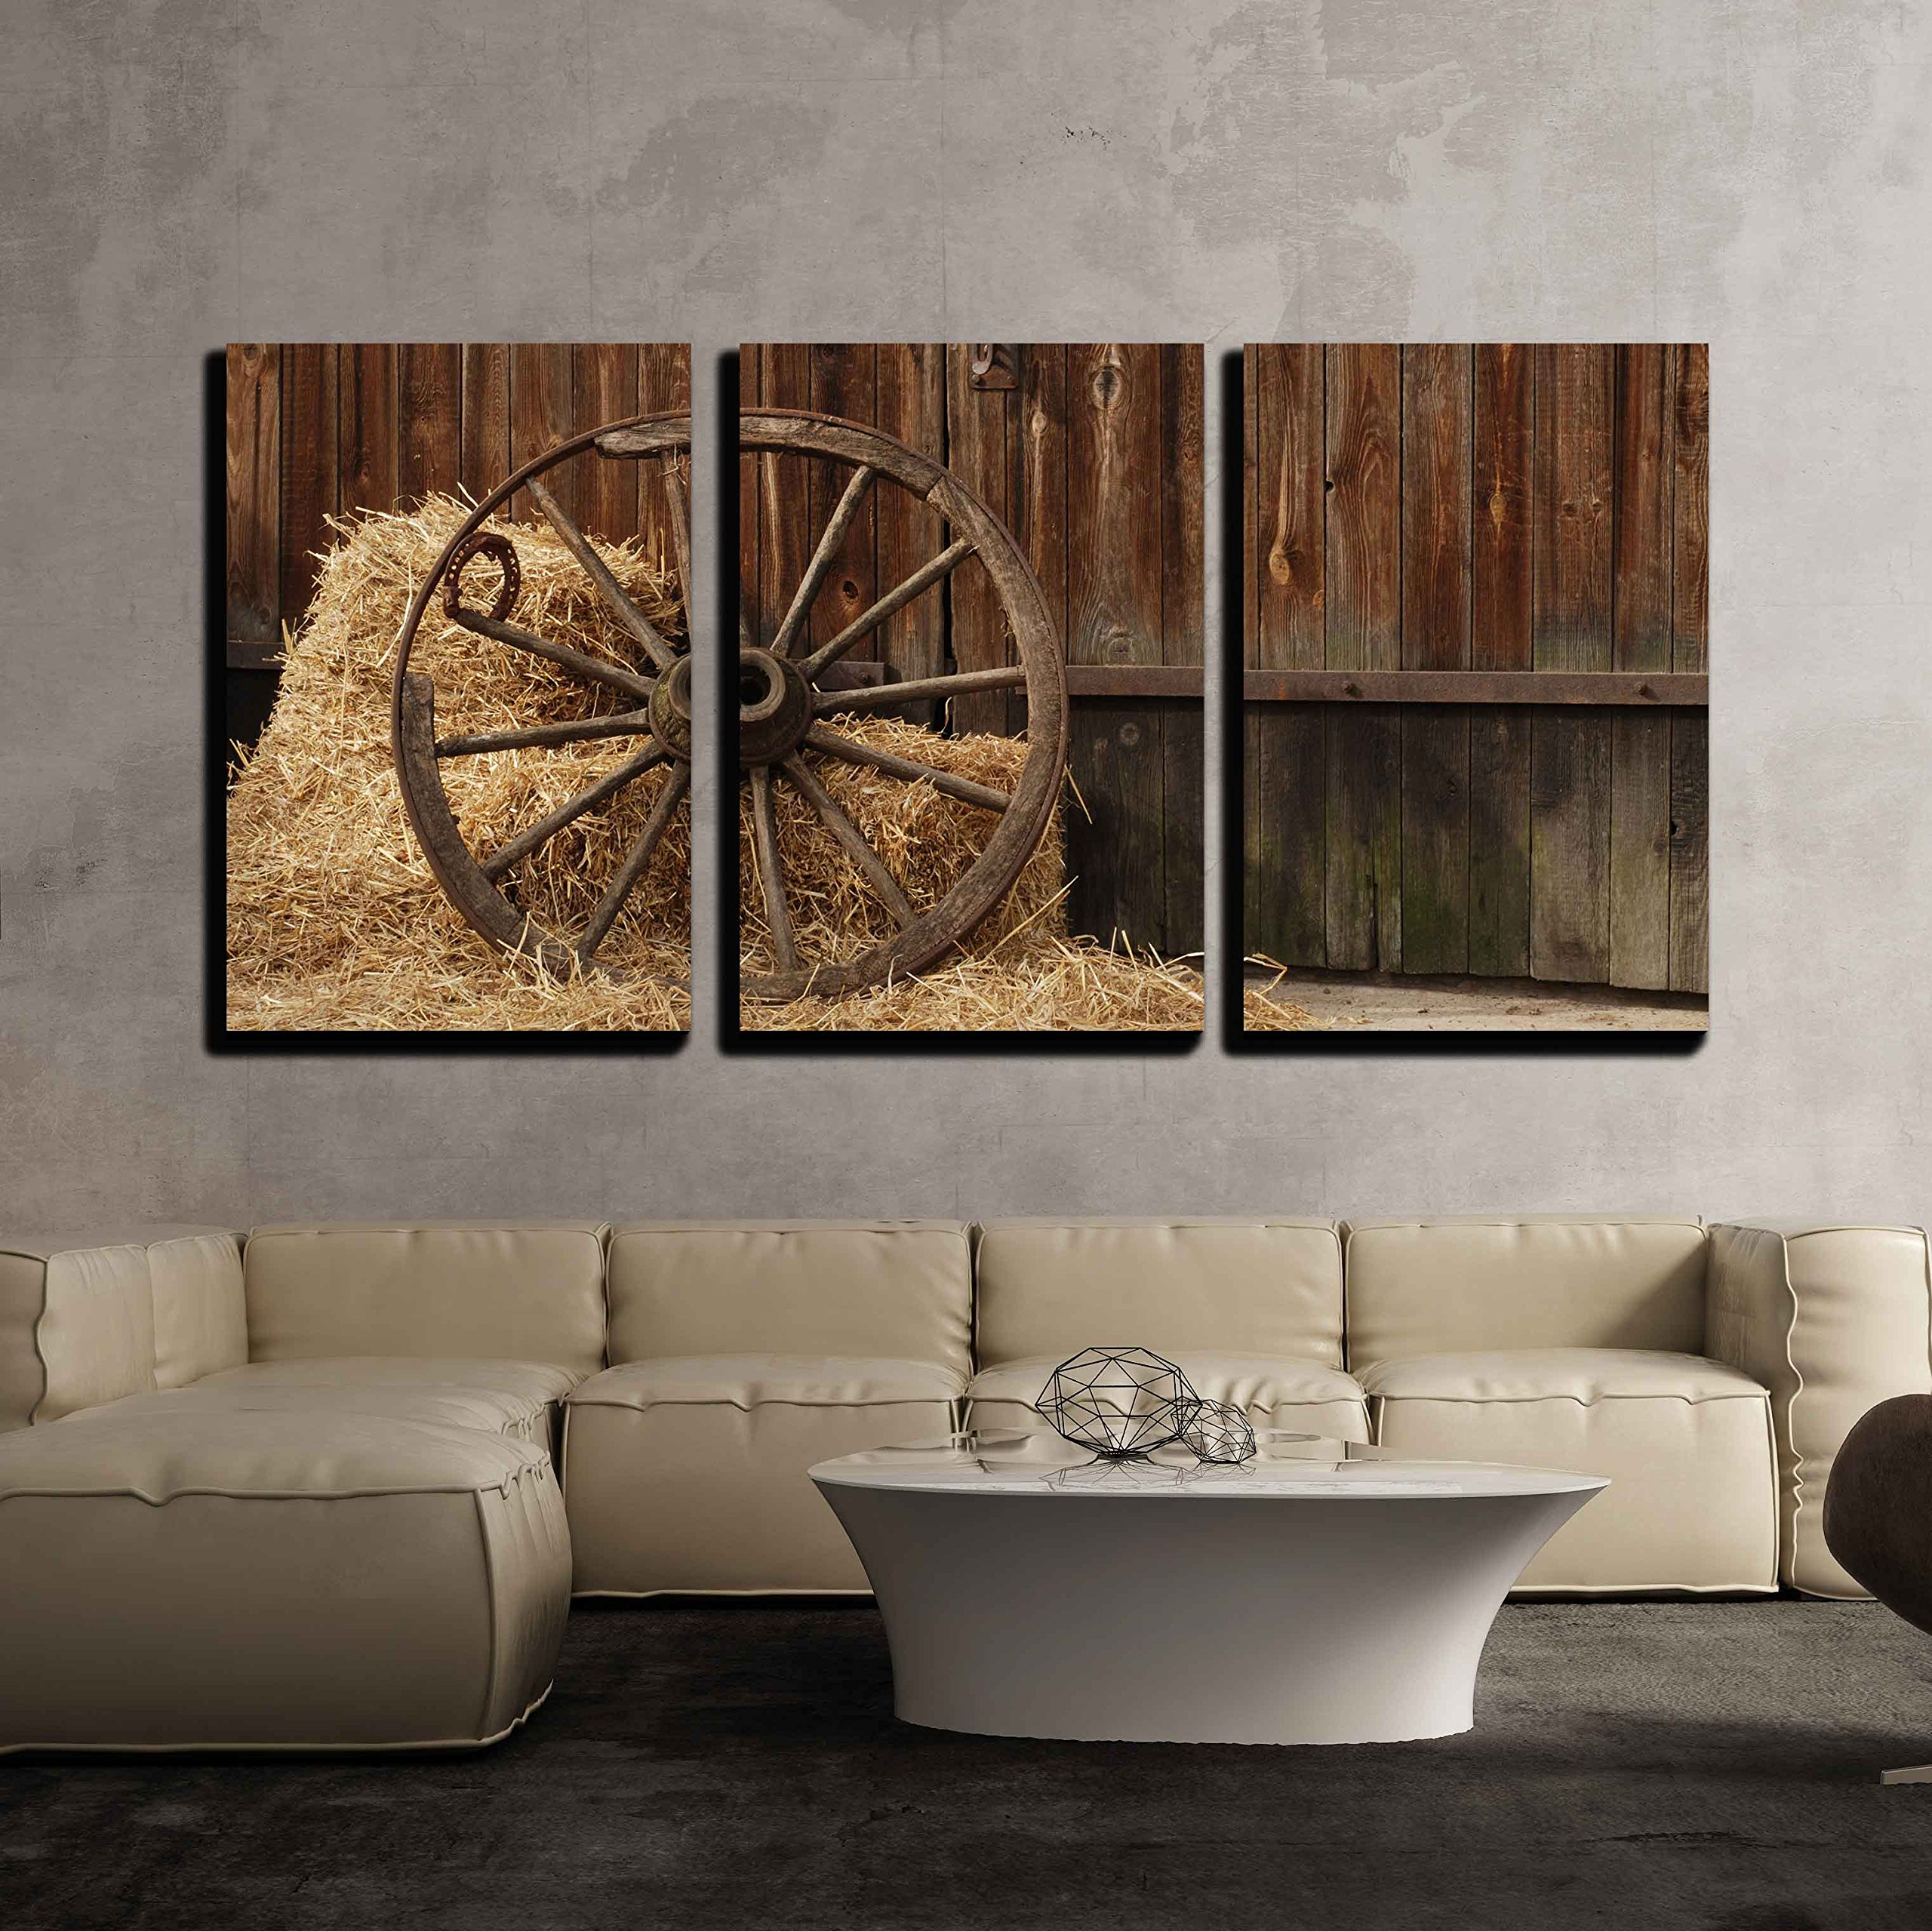 """wall26 - 3 Piece Canvas Wall Art - The Old Antique Wheel from cart on Background of hay and barn - Modern Home Art Stretched and Framed Ready to Hang - 16""""x24""""x3 Panels"""